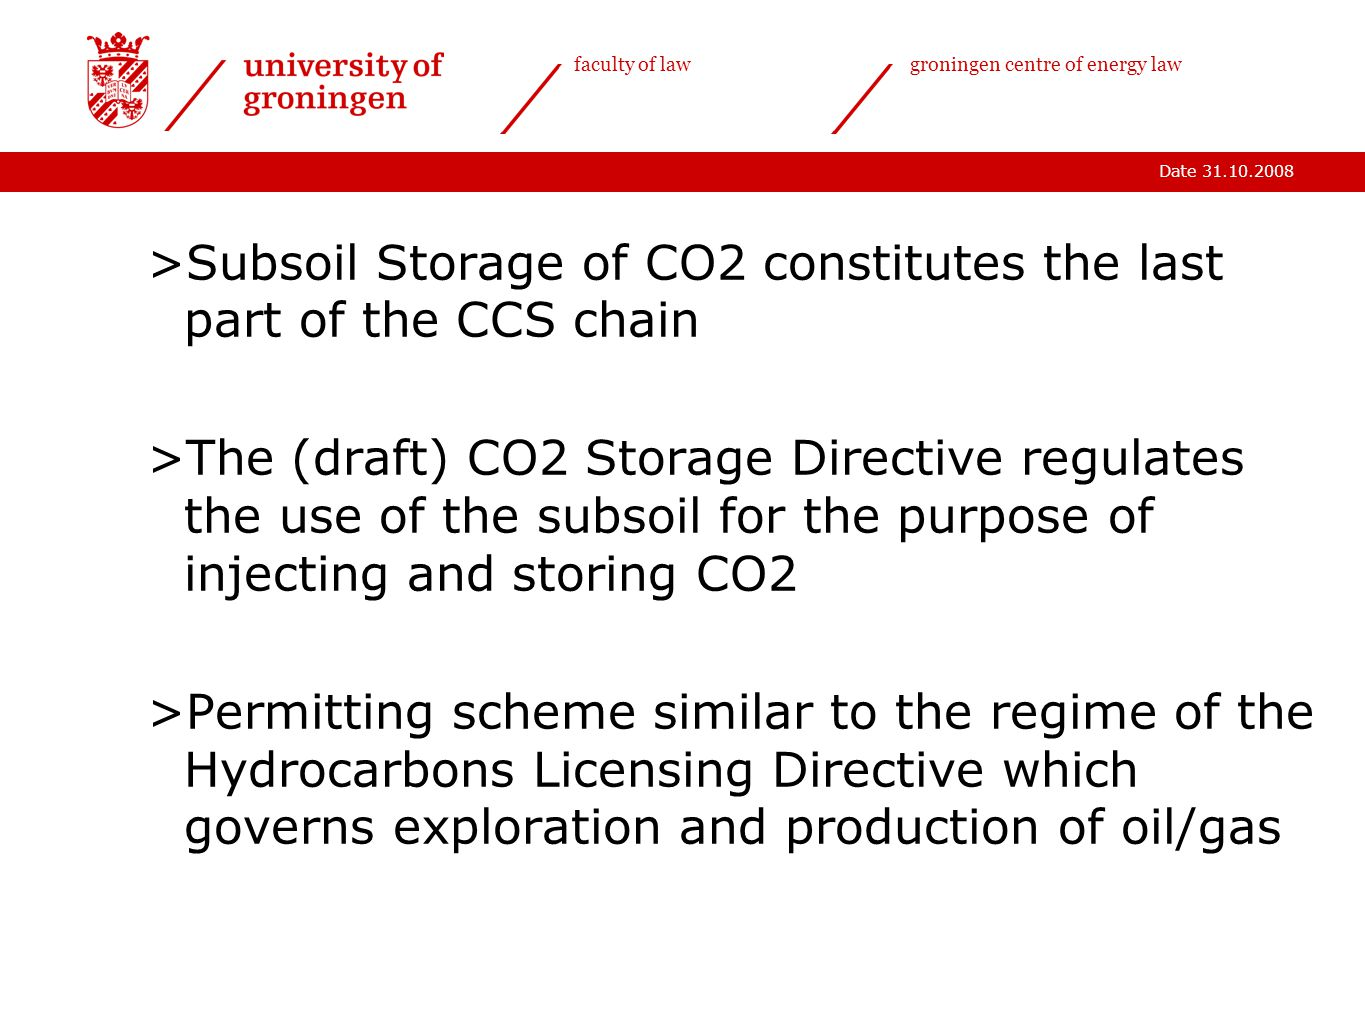 Date 31.10.2008 faculty of lawgroningen centre of energy law >Subsoil Storage of CO2 constitutes the last part of the CCS chain >The (draft) CO2 Storage Directive regulates the use of the subsoil for the purpose of injecting and storing CO2 >Permitting scheme similar to the regime of the Hydrocarbons Licensing Directive which governs exploration and production of oil/gas